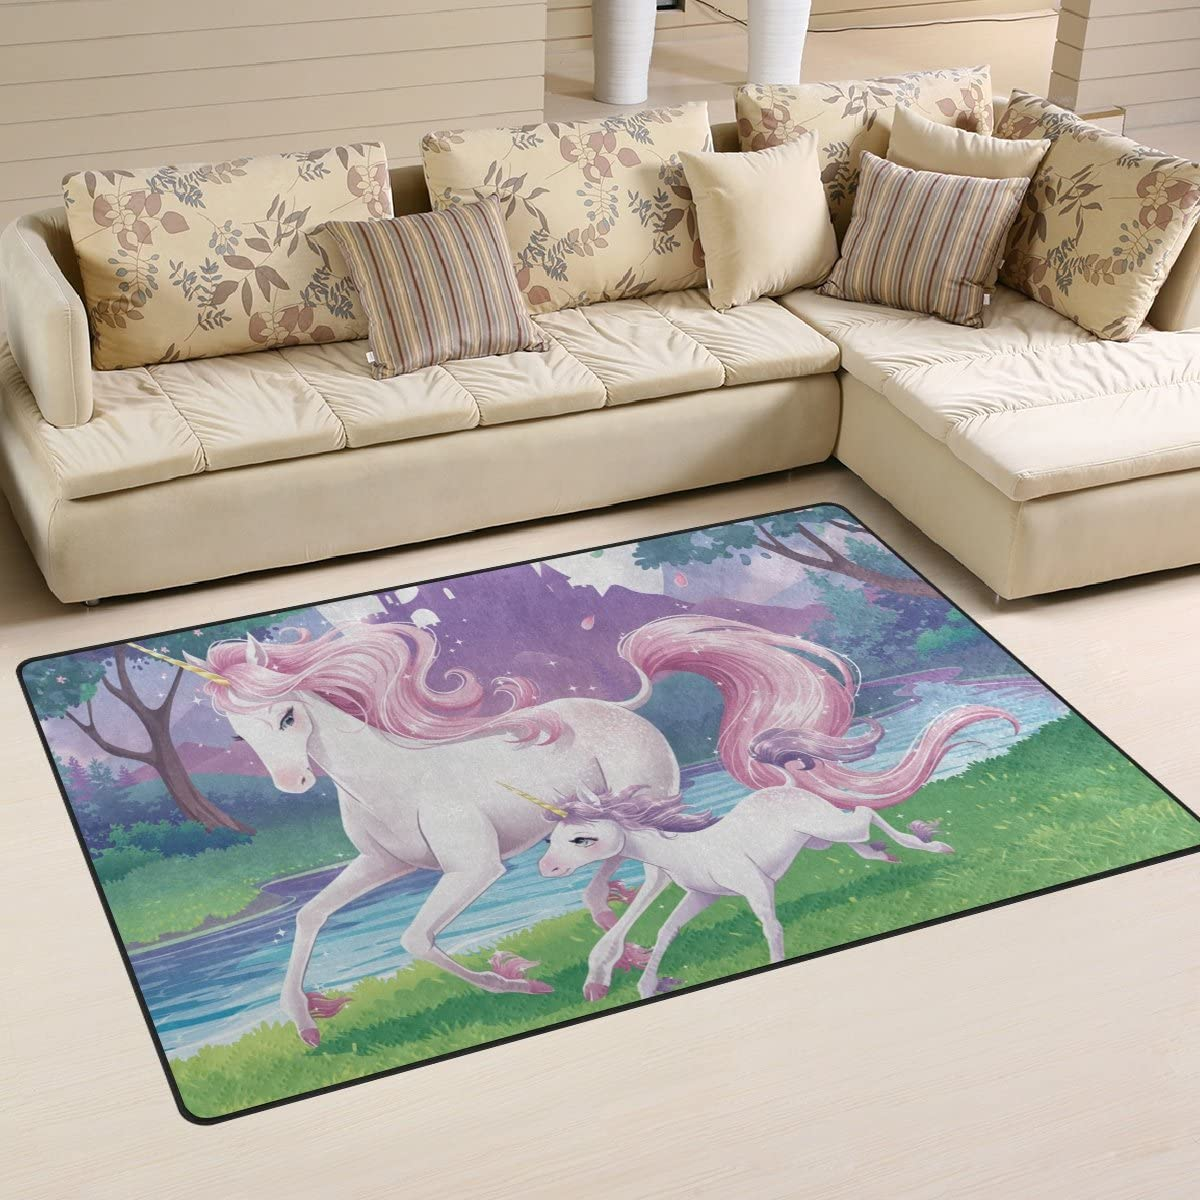 DEYYA Pink Unicorn Mother and Son Forest Run Area Rug Rugs Non-Slip Floor Mat Doormats for Living Room Bedroom 60×39 inches